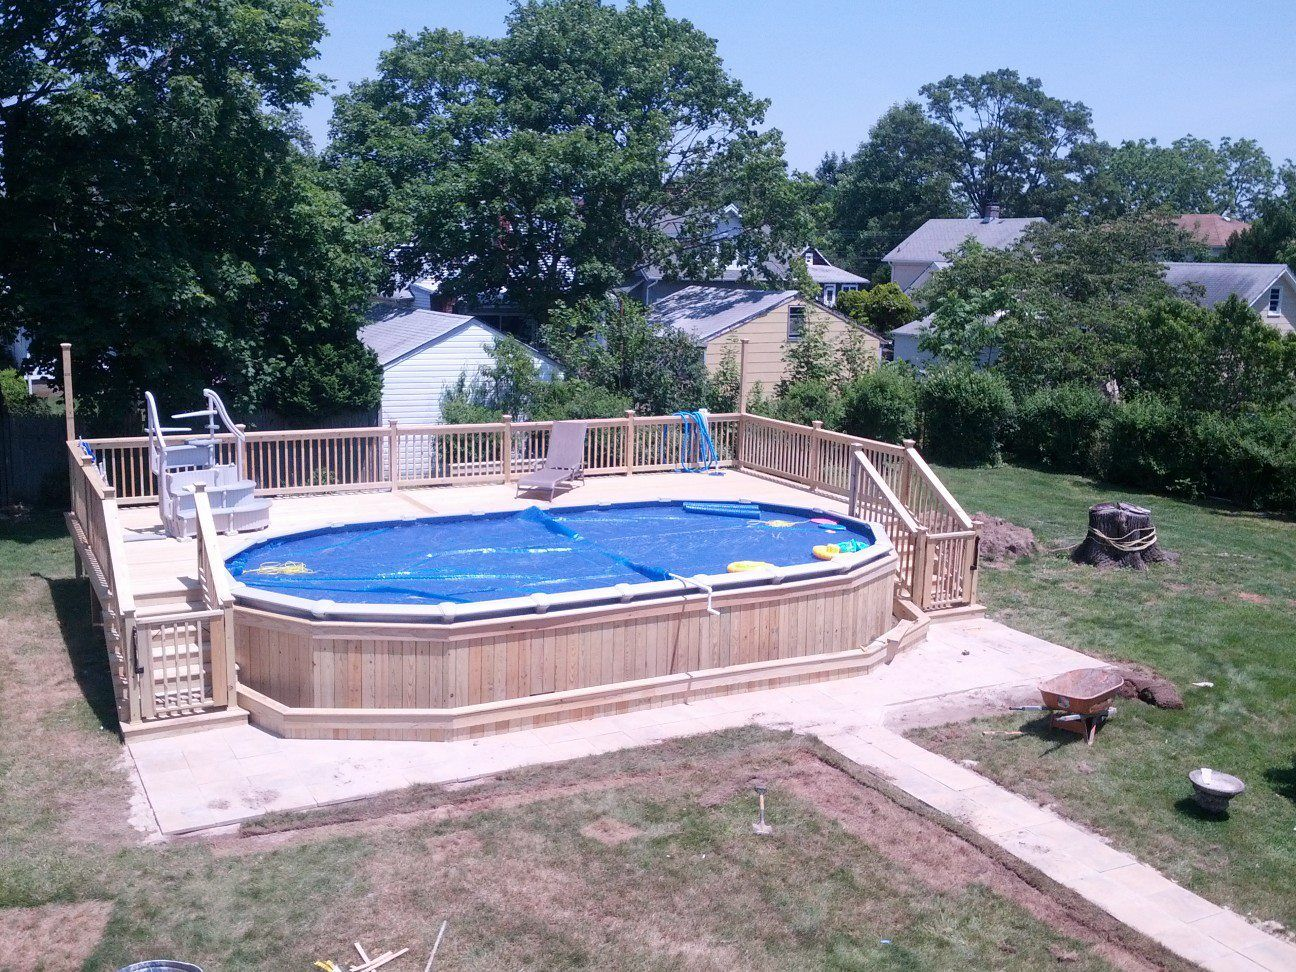 211 best swimming pools and spas images on pinterest   backyard